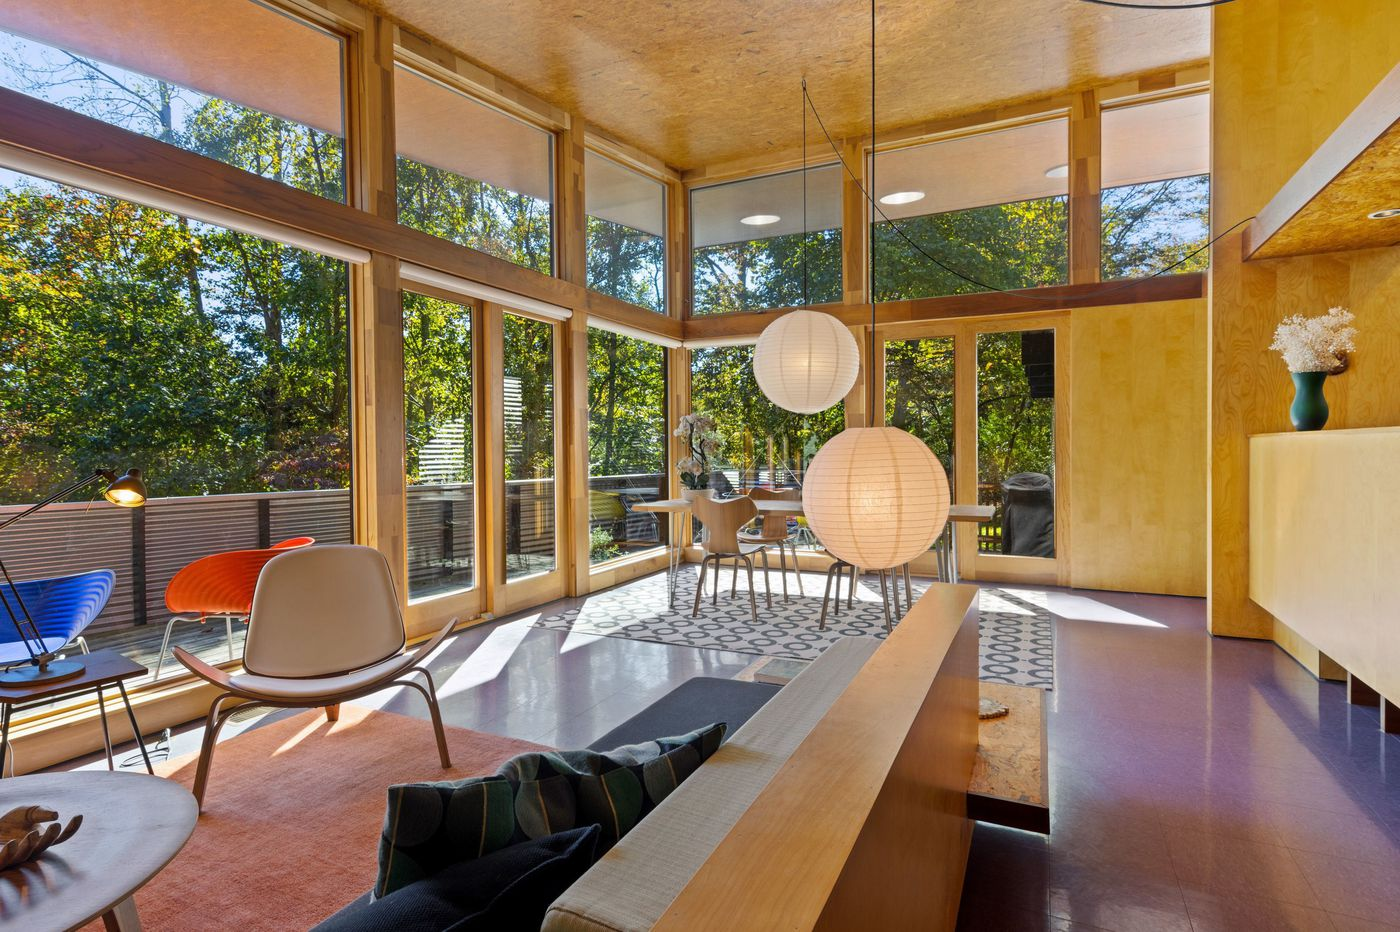 On the market: A Frank Lloyd Wright-inspired house in rural Chester County